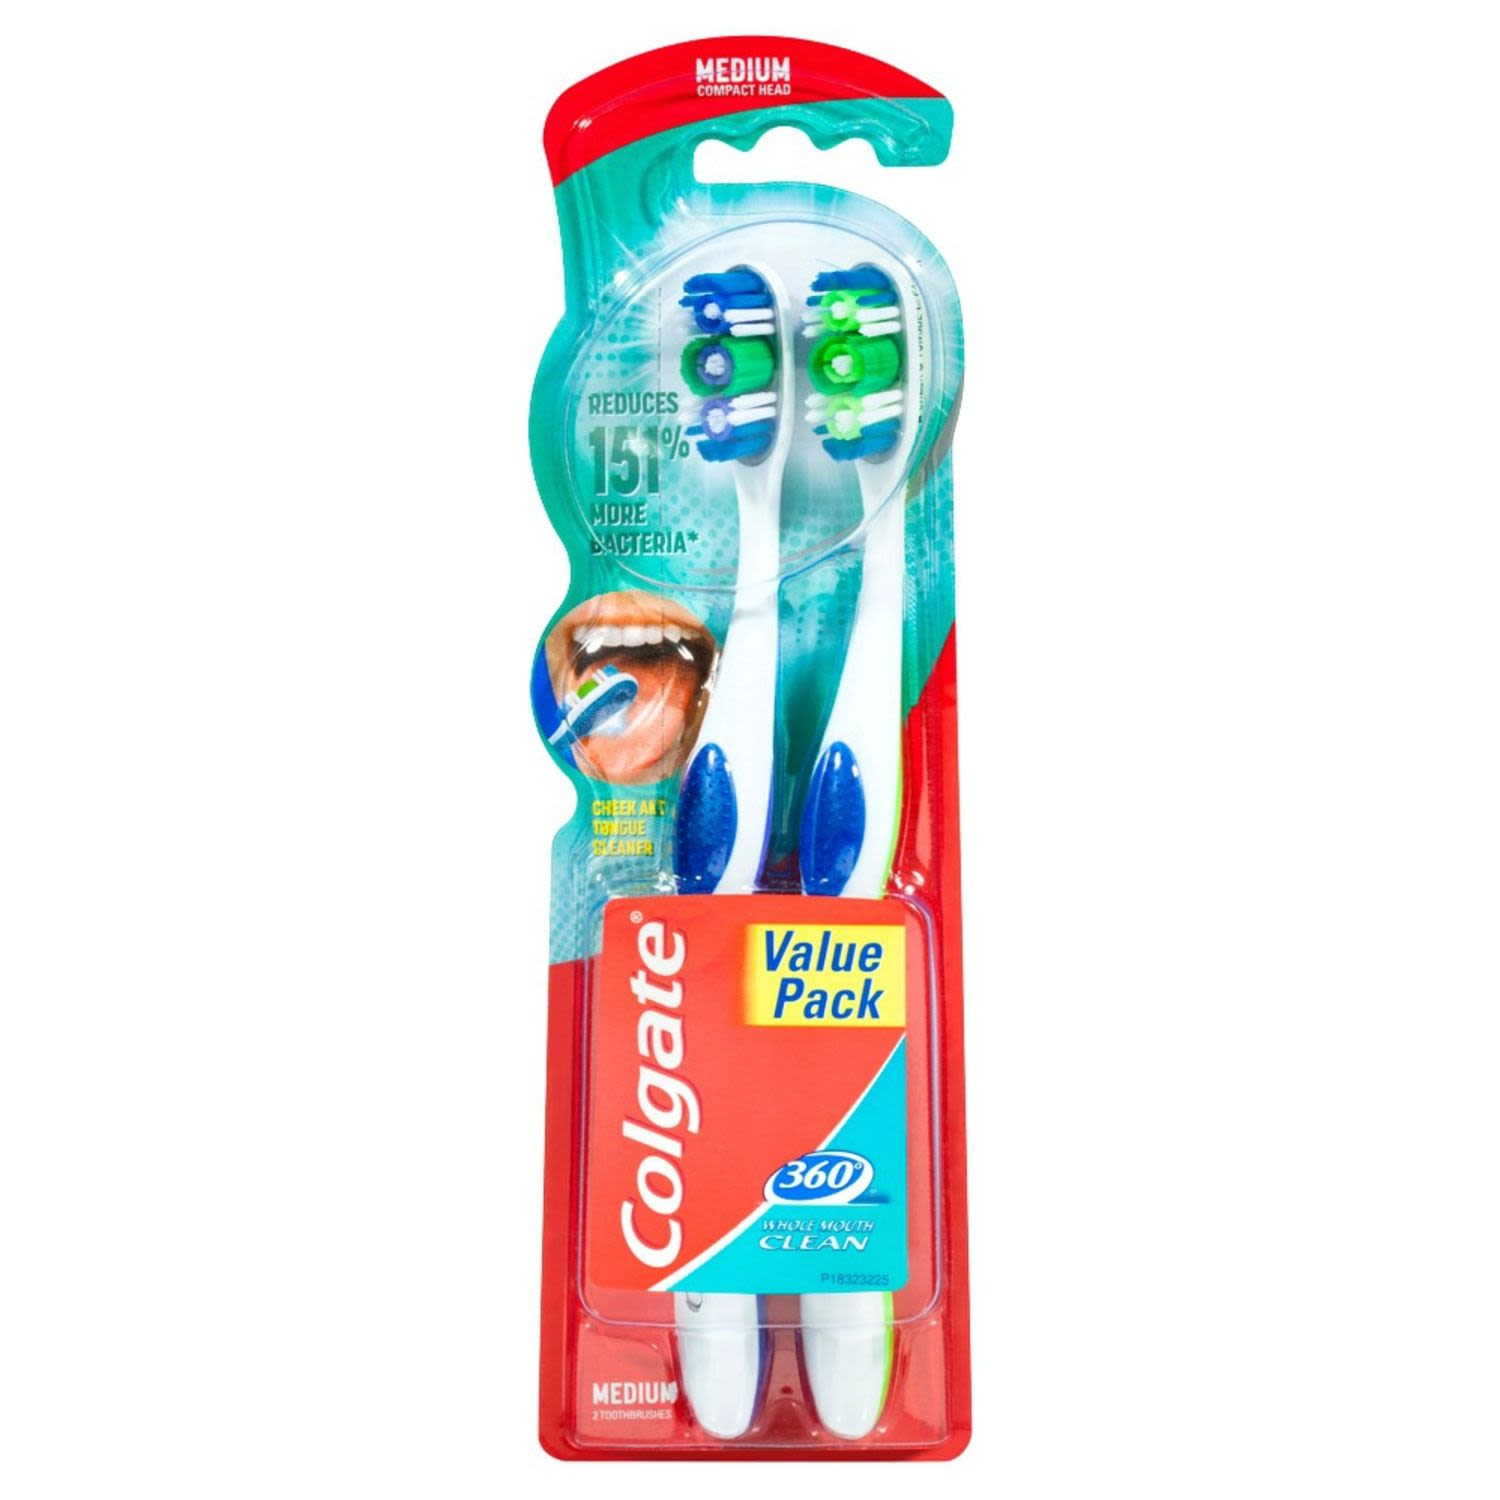 Colgate 360 Degrees Whole Mouth Clean Compact Head Toothbrush Medium, 2 Each